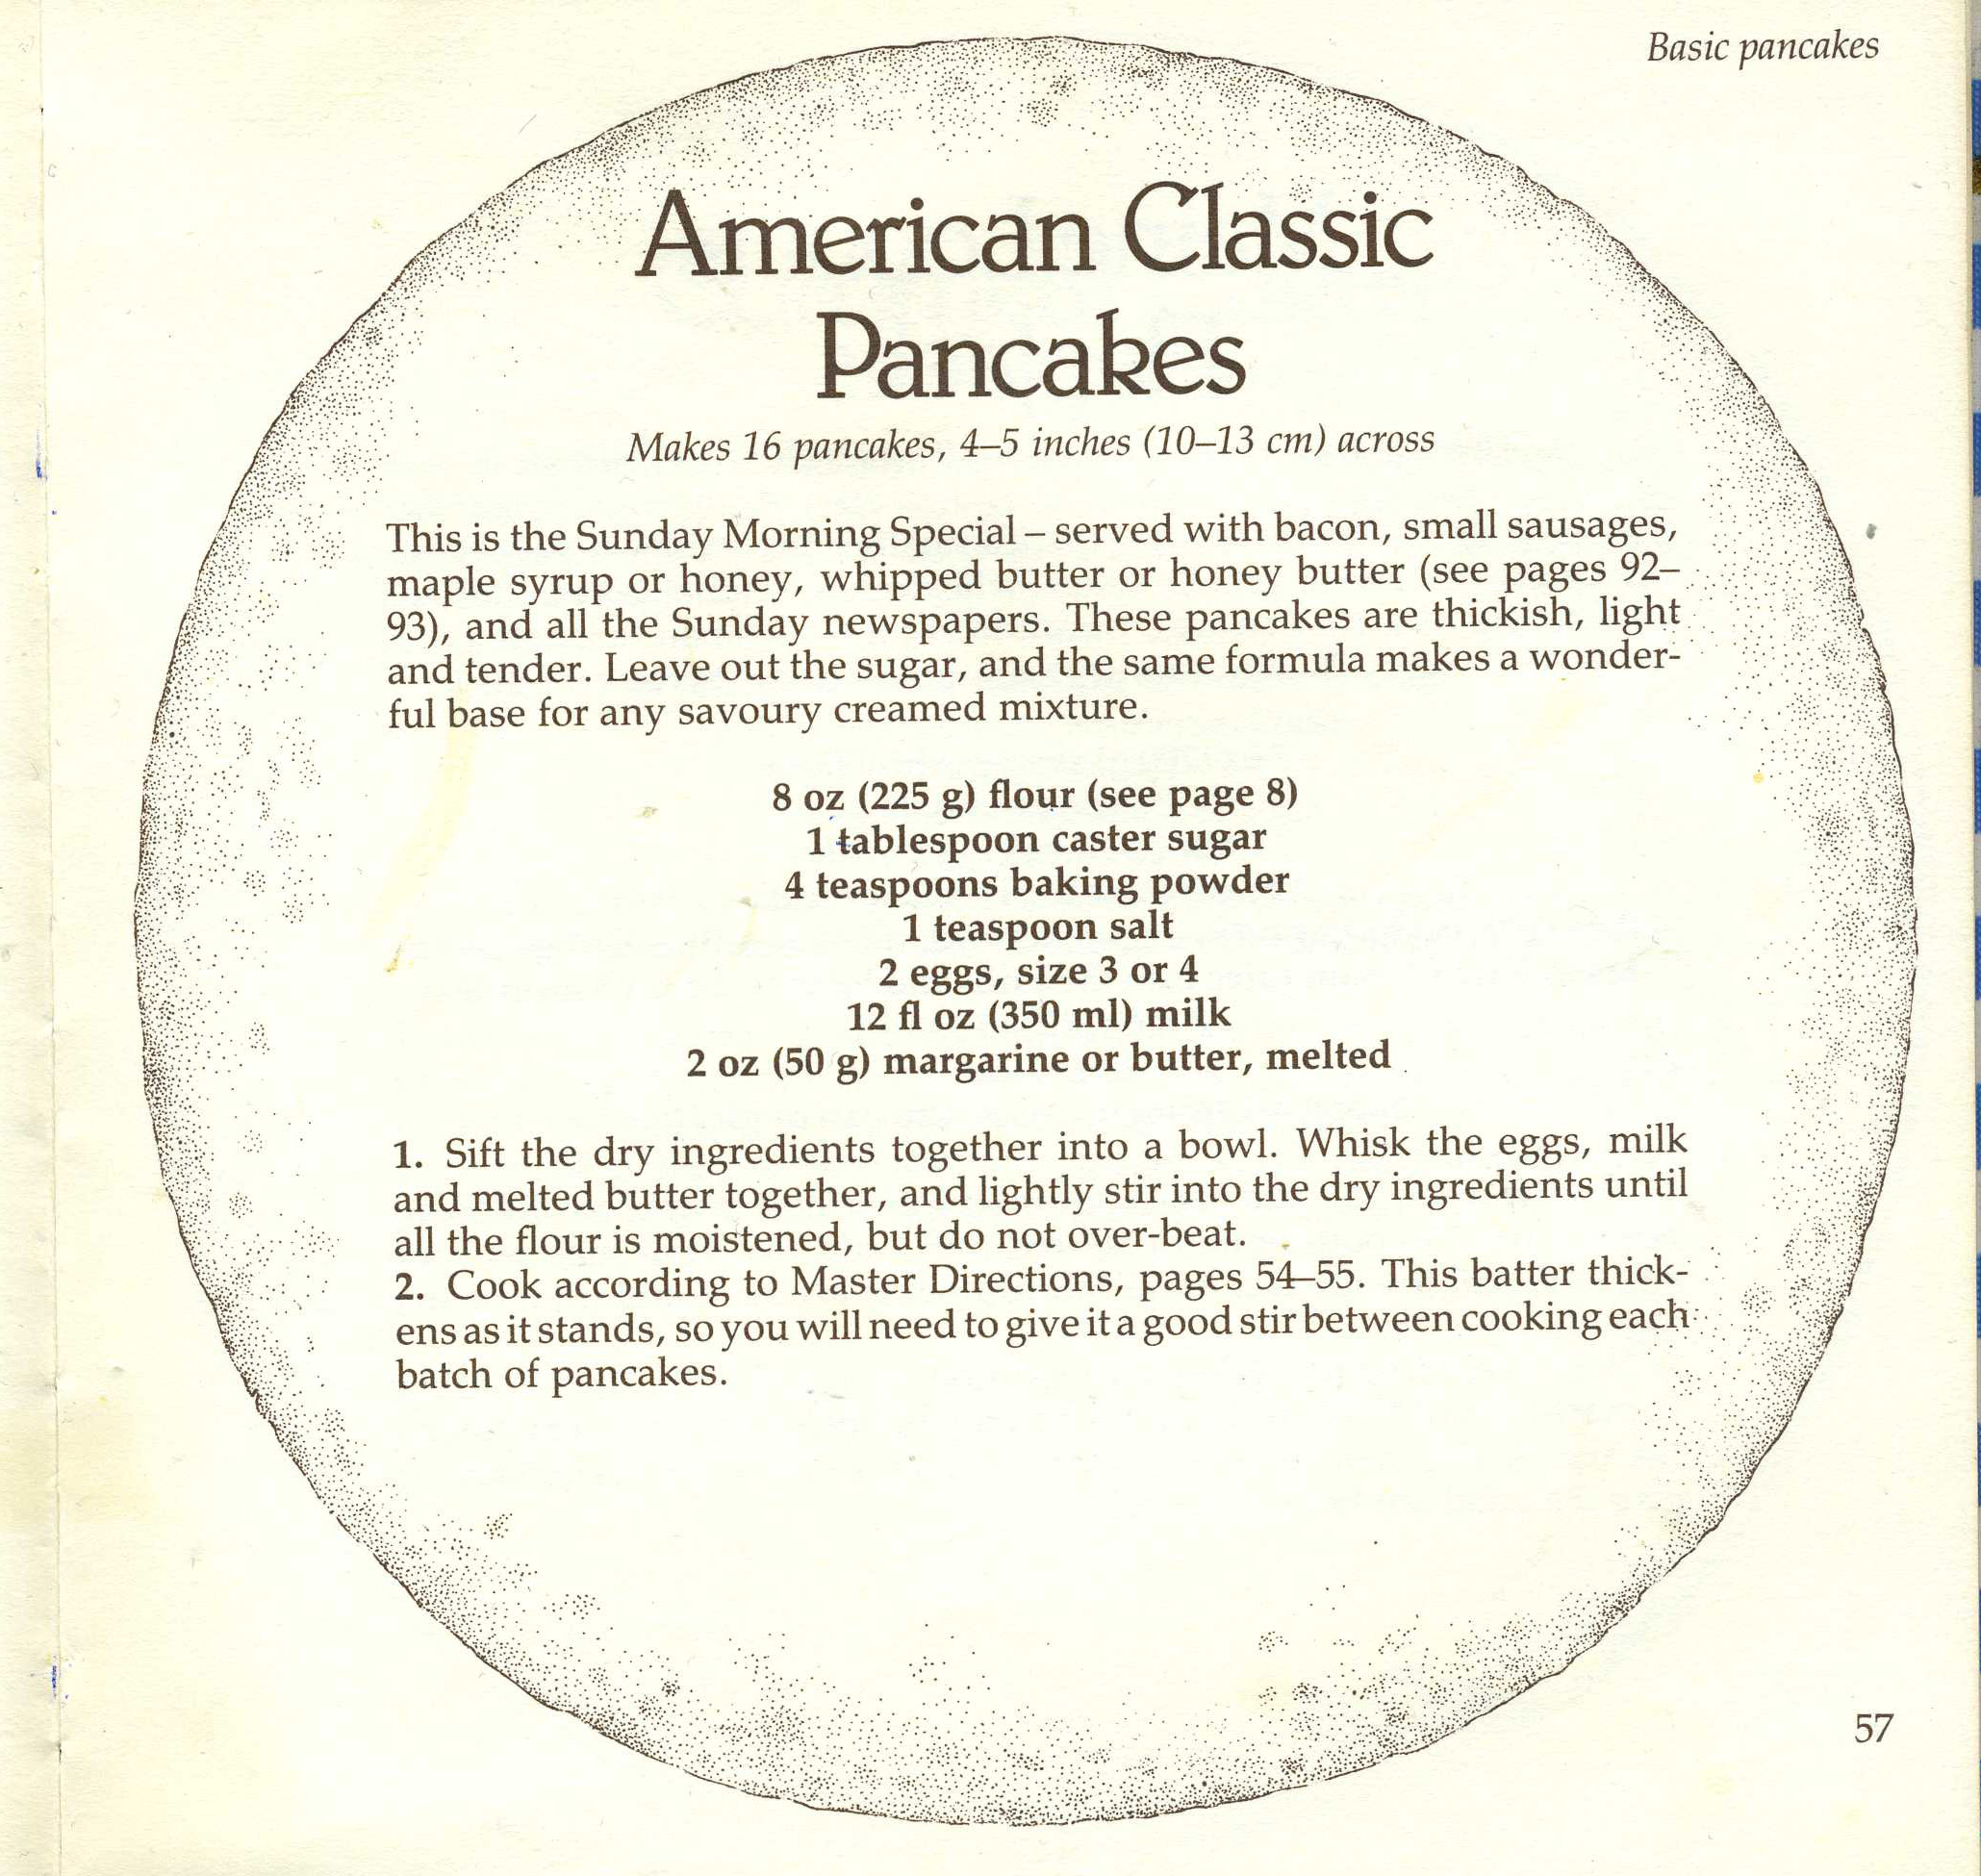 American Classic Pancakes The Vintage Cookbook Trials